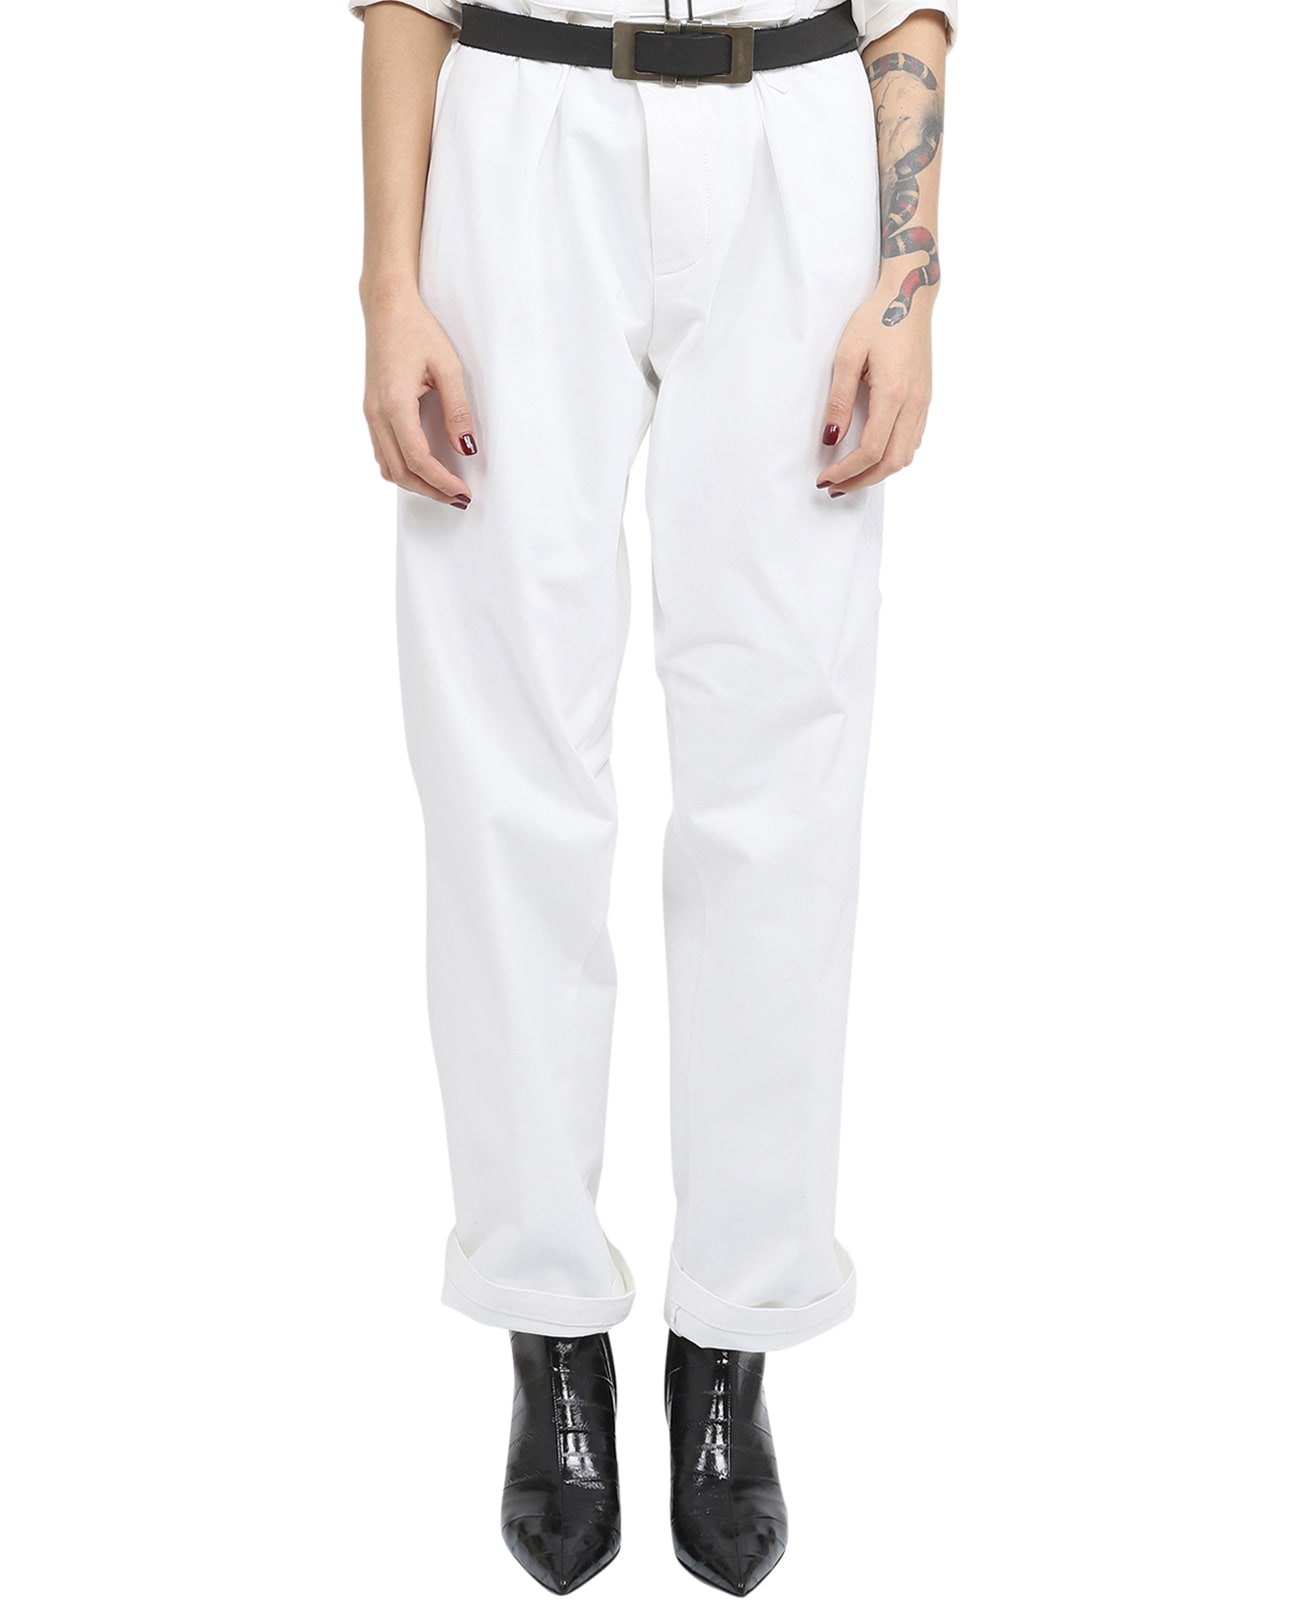 Haider Ackermann White Belted Trousers